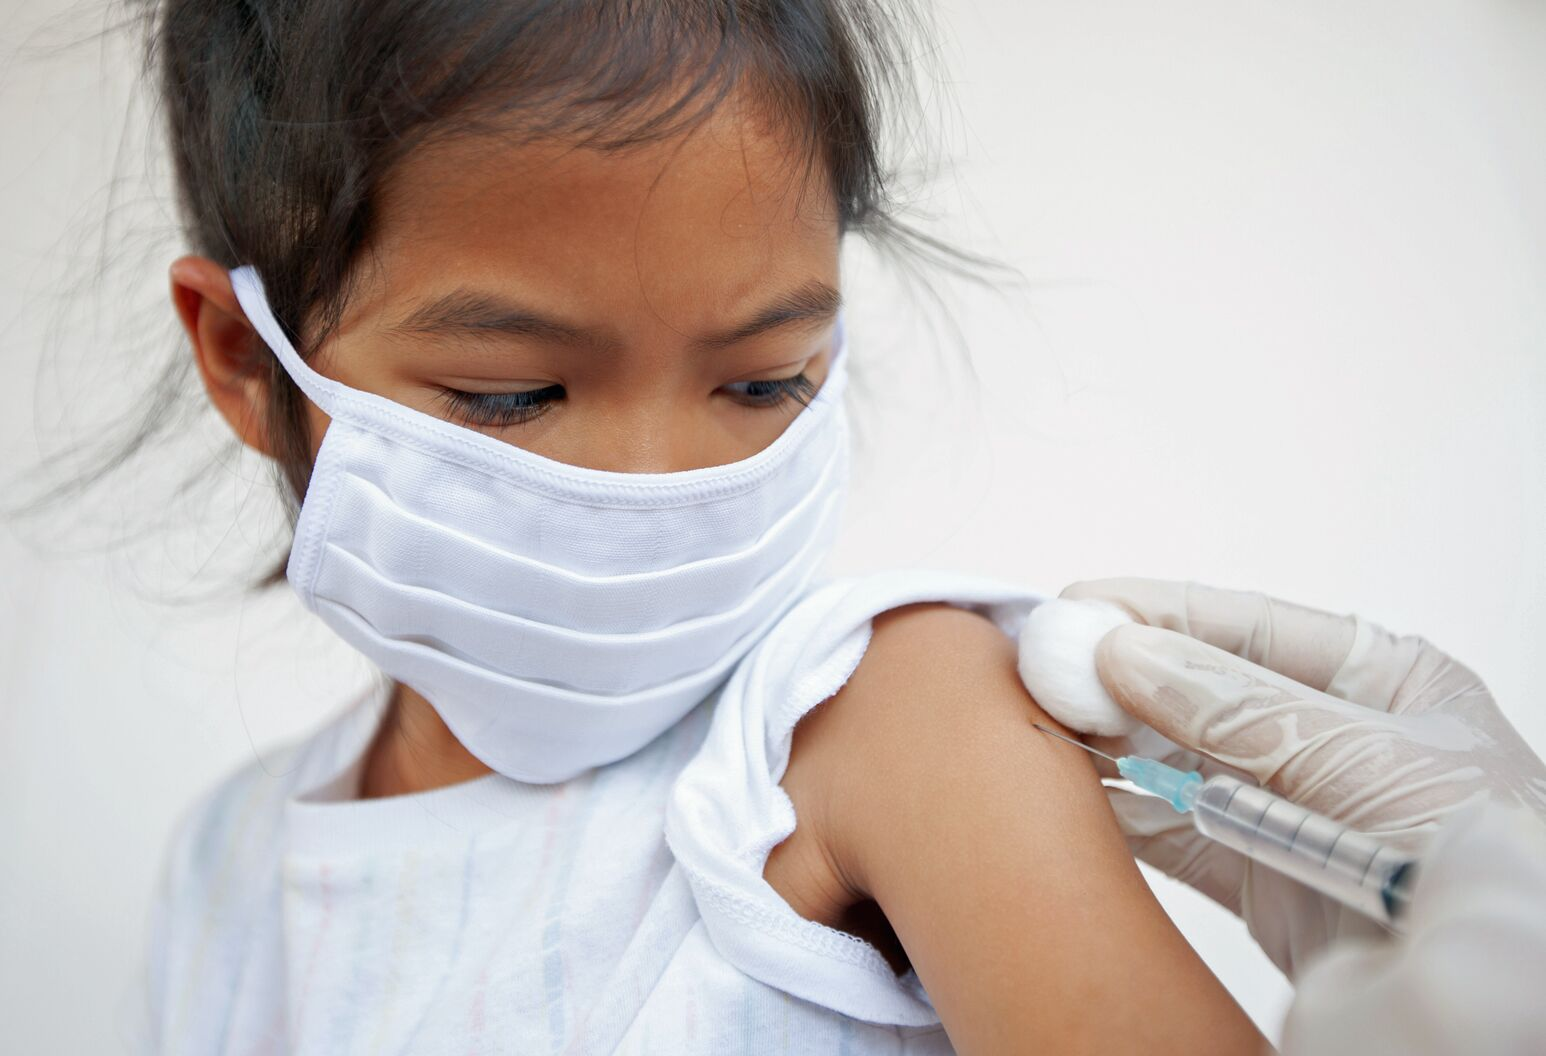 Kids must be included in COVID-19 vaccine trials | Northwell Health